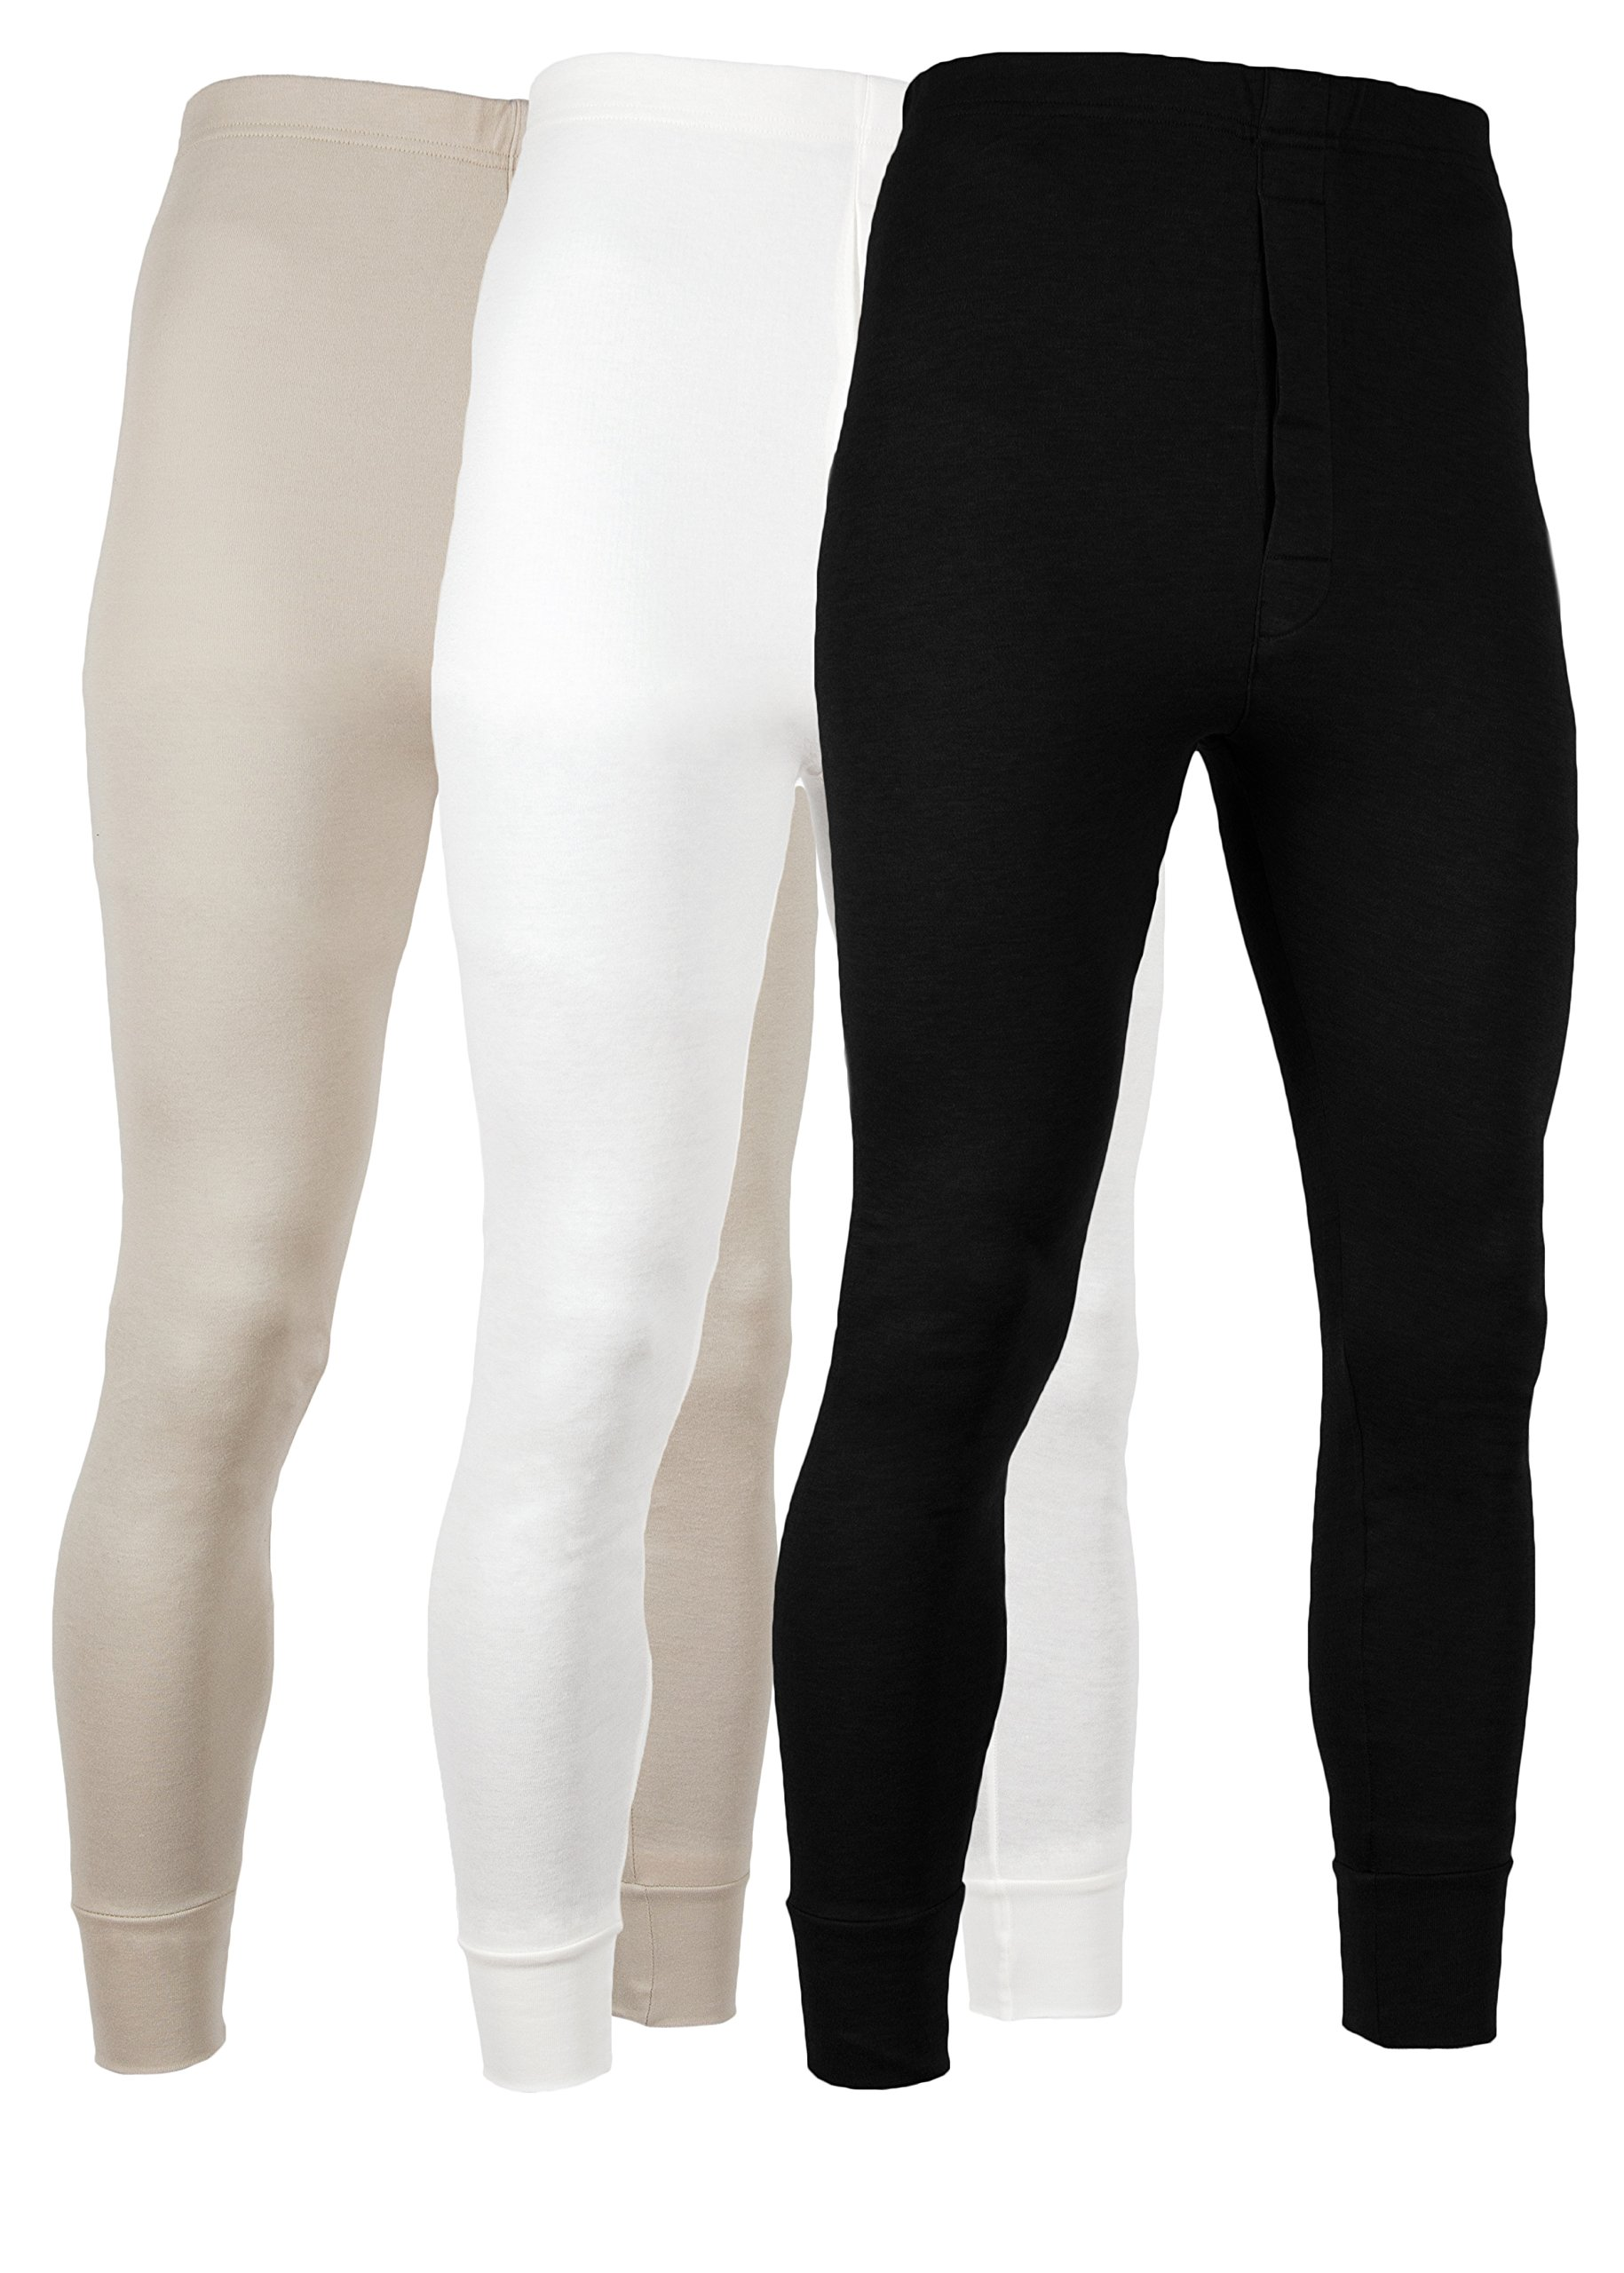 American Active Men's Long Johns Thermal Base Layer Pants 100% Cotton Fleece Lined Underwear -Pack Of 3 (3 Pack- Black/Cream/Sand, Medium) by AMERICAN ACTIVE